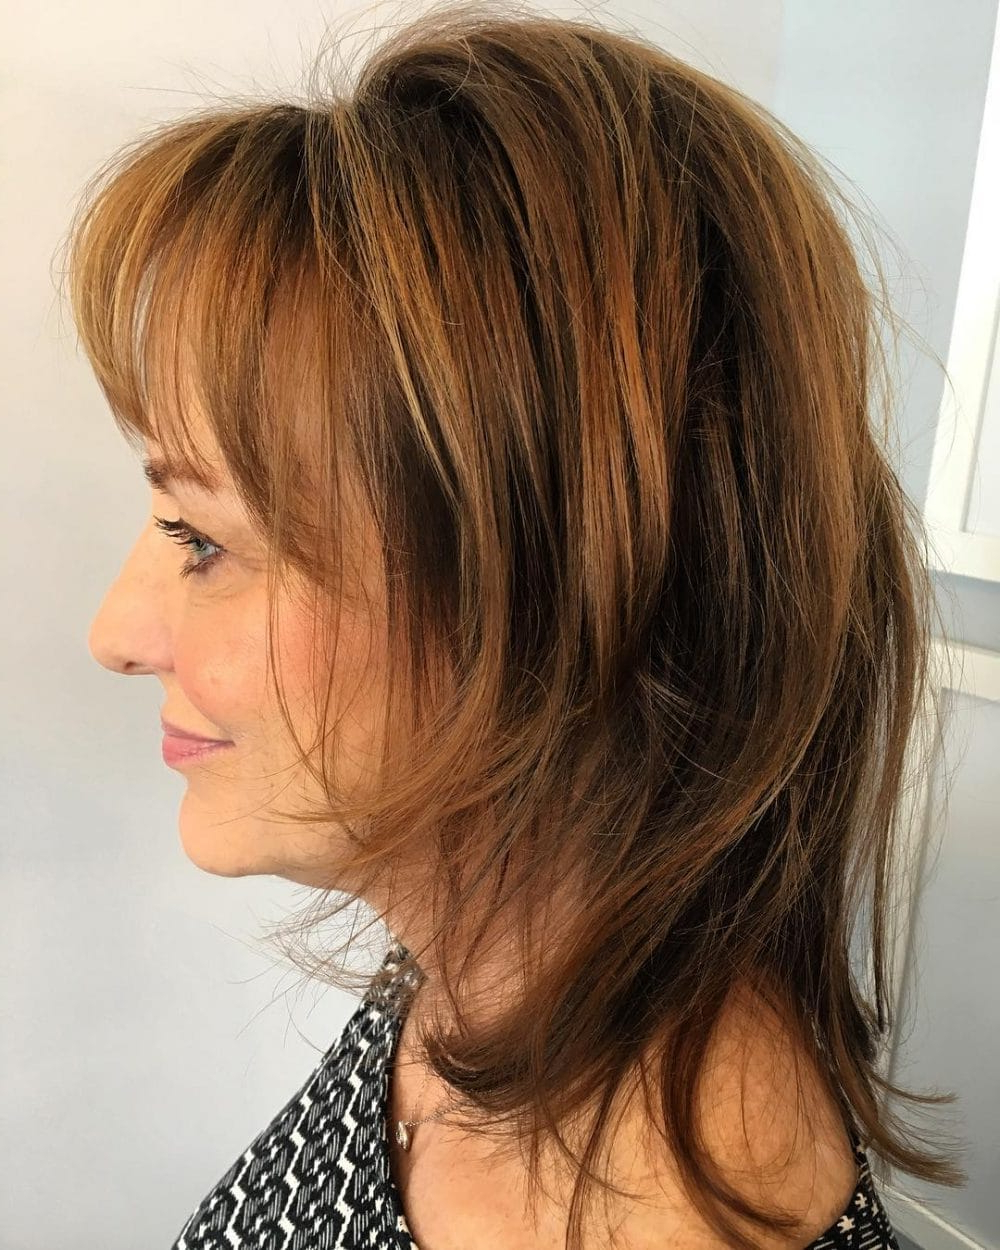 Well Known Medium Choppy Shag Haircuts With Bangs Within 26 Modern Shag Haircuts To Try In 2019 (Gallery 12 of 20)